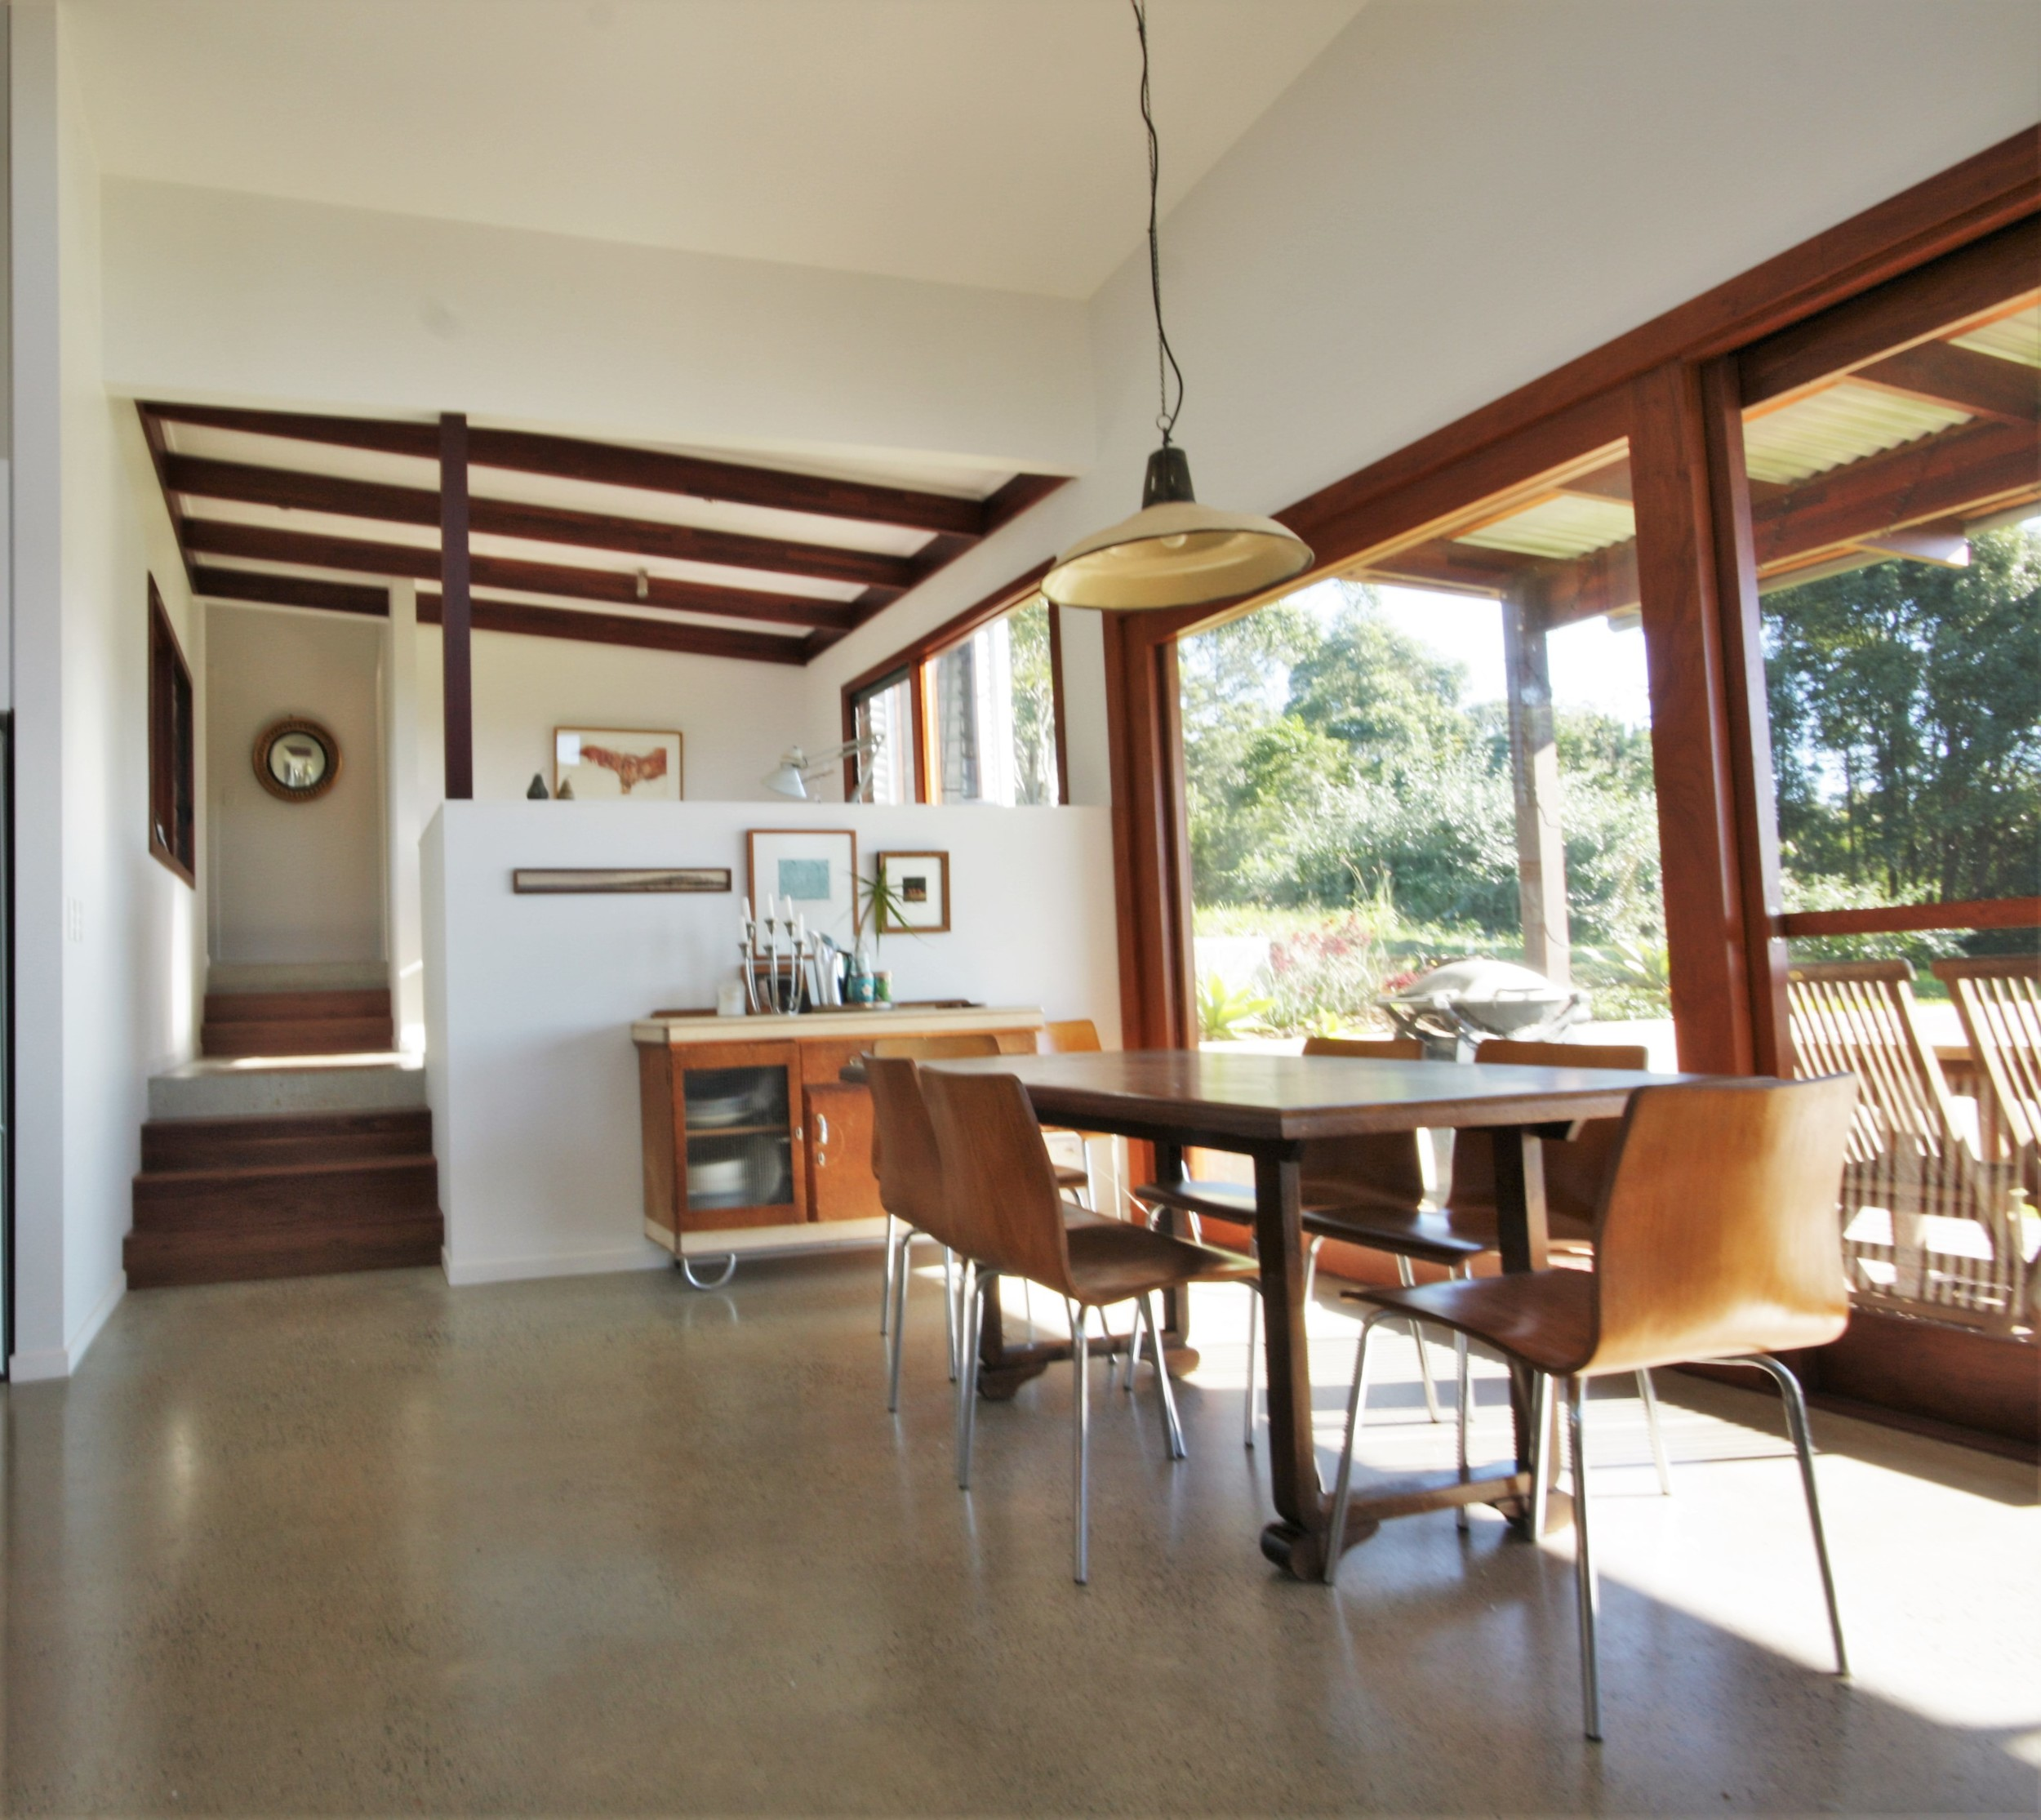 Interior Kirkpatrick-Lipsett House, Federal NSW